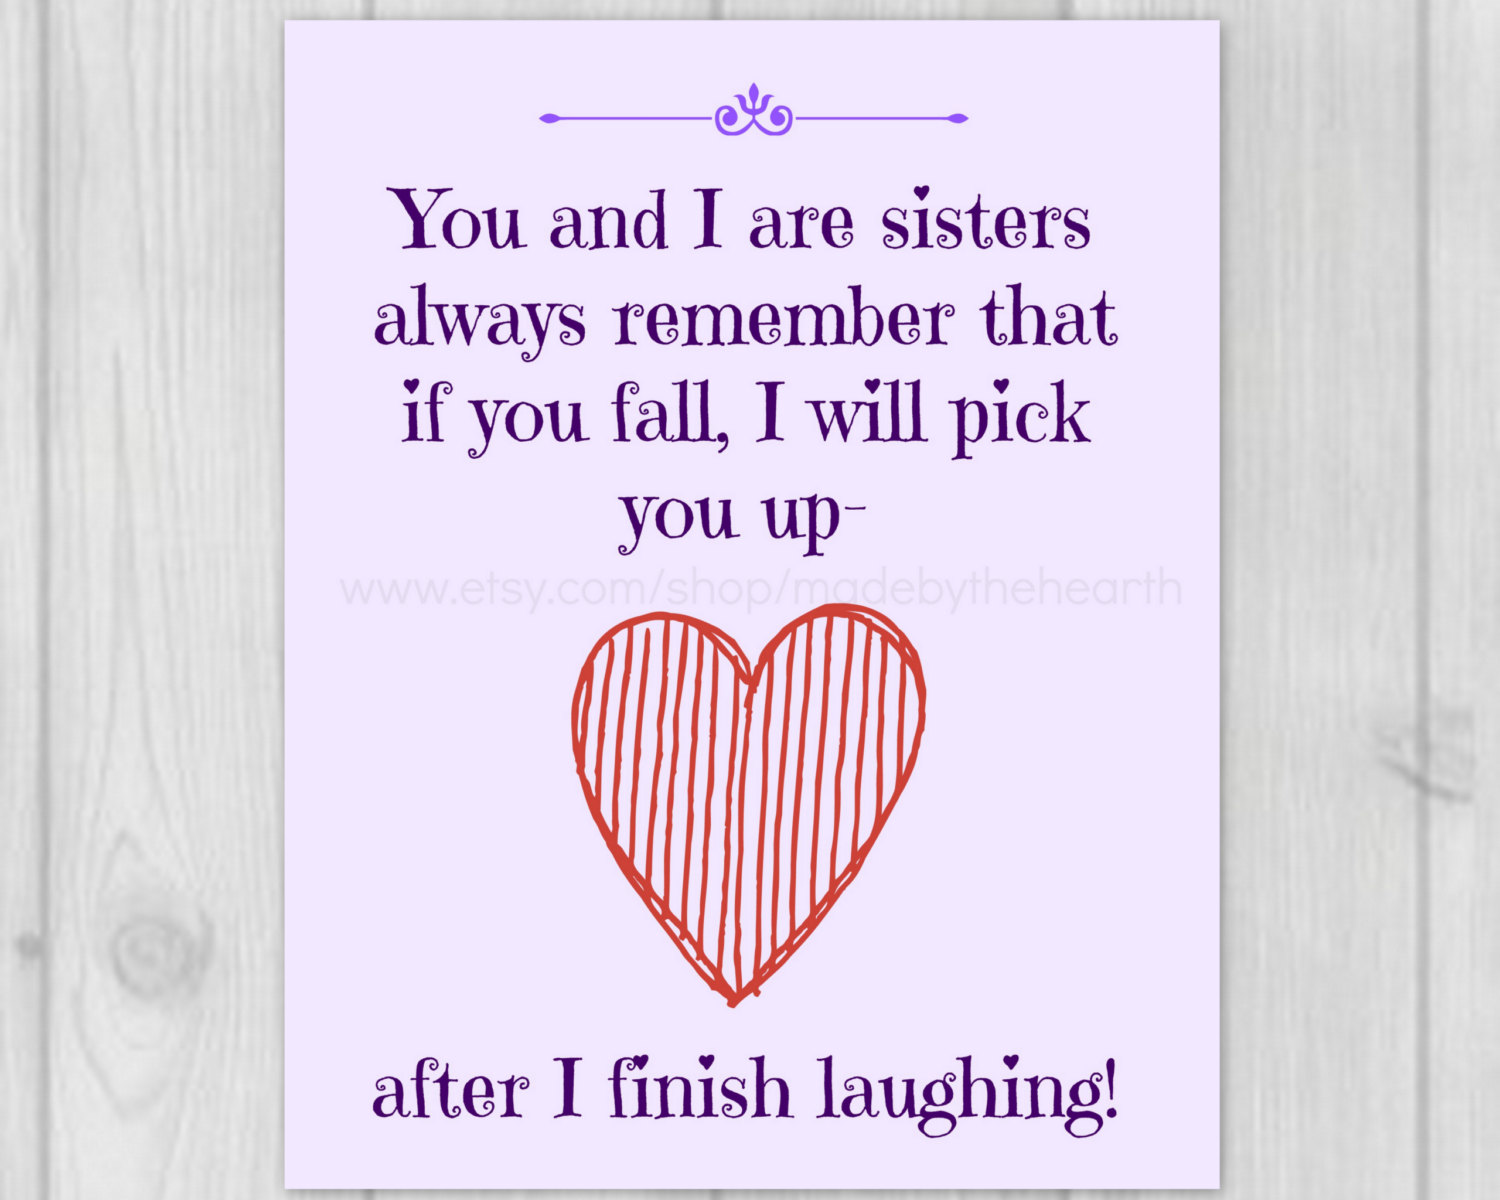 birthday message for sister tagalog tumblr ; quotes-about-sisters-tumblr-quotes-about-sisters-just-happy-quotes-photos